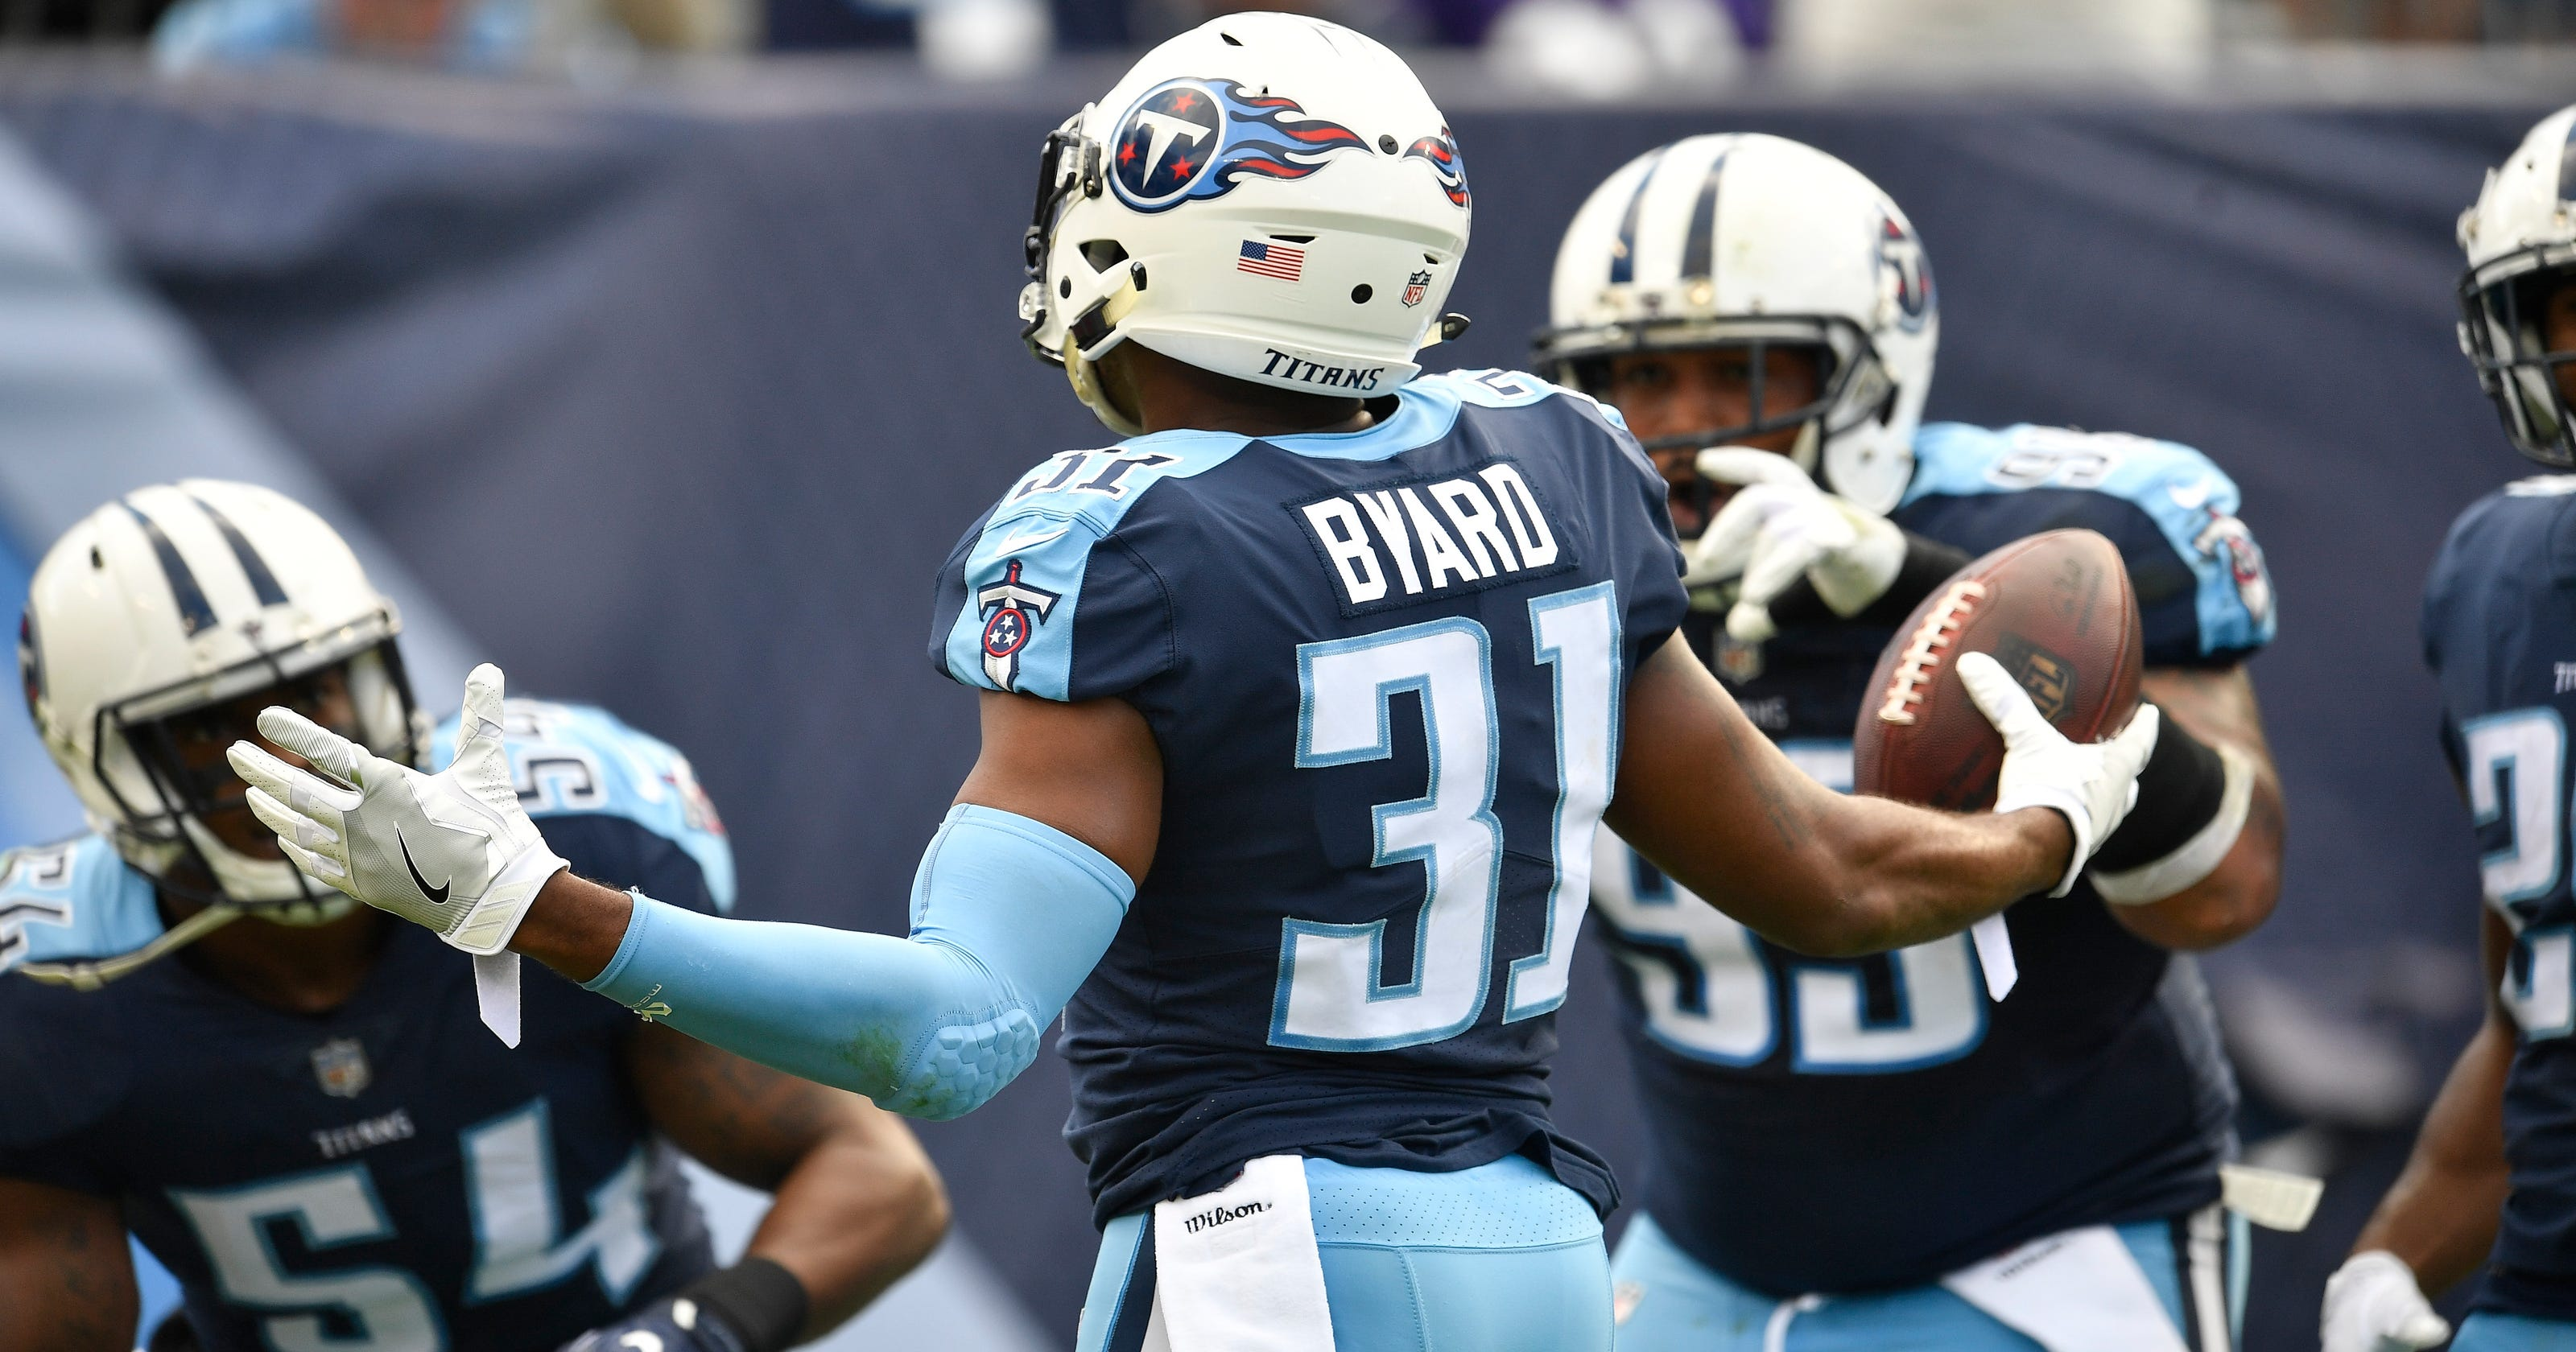 Kevin Byard on pace to challenge Titans  all-time interceptions record bffbcab47